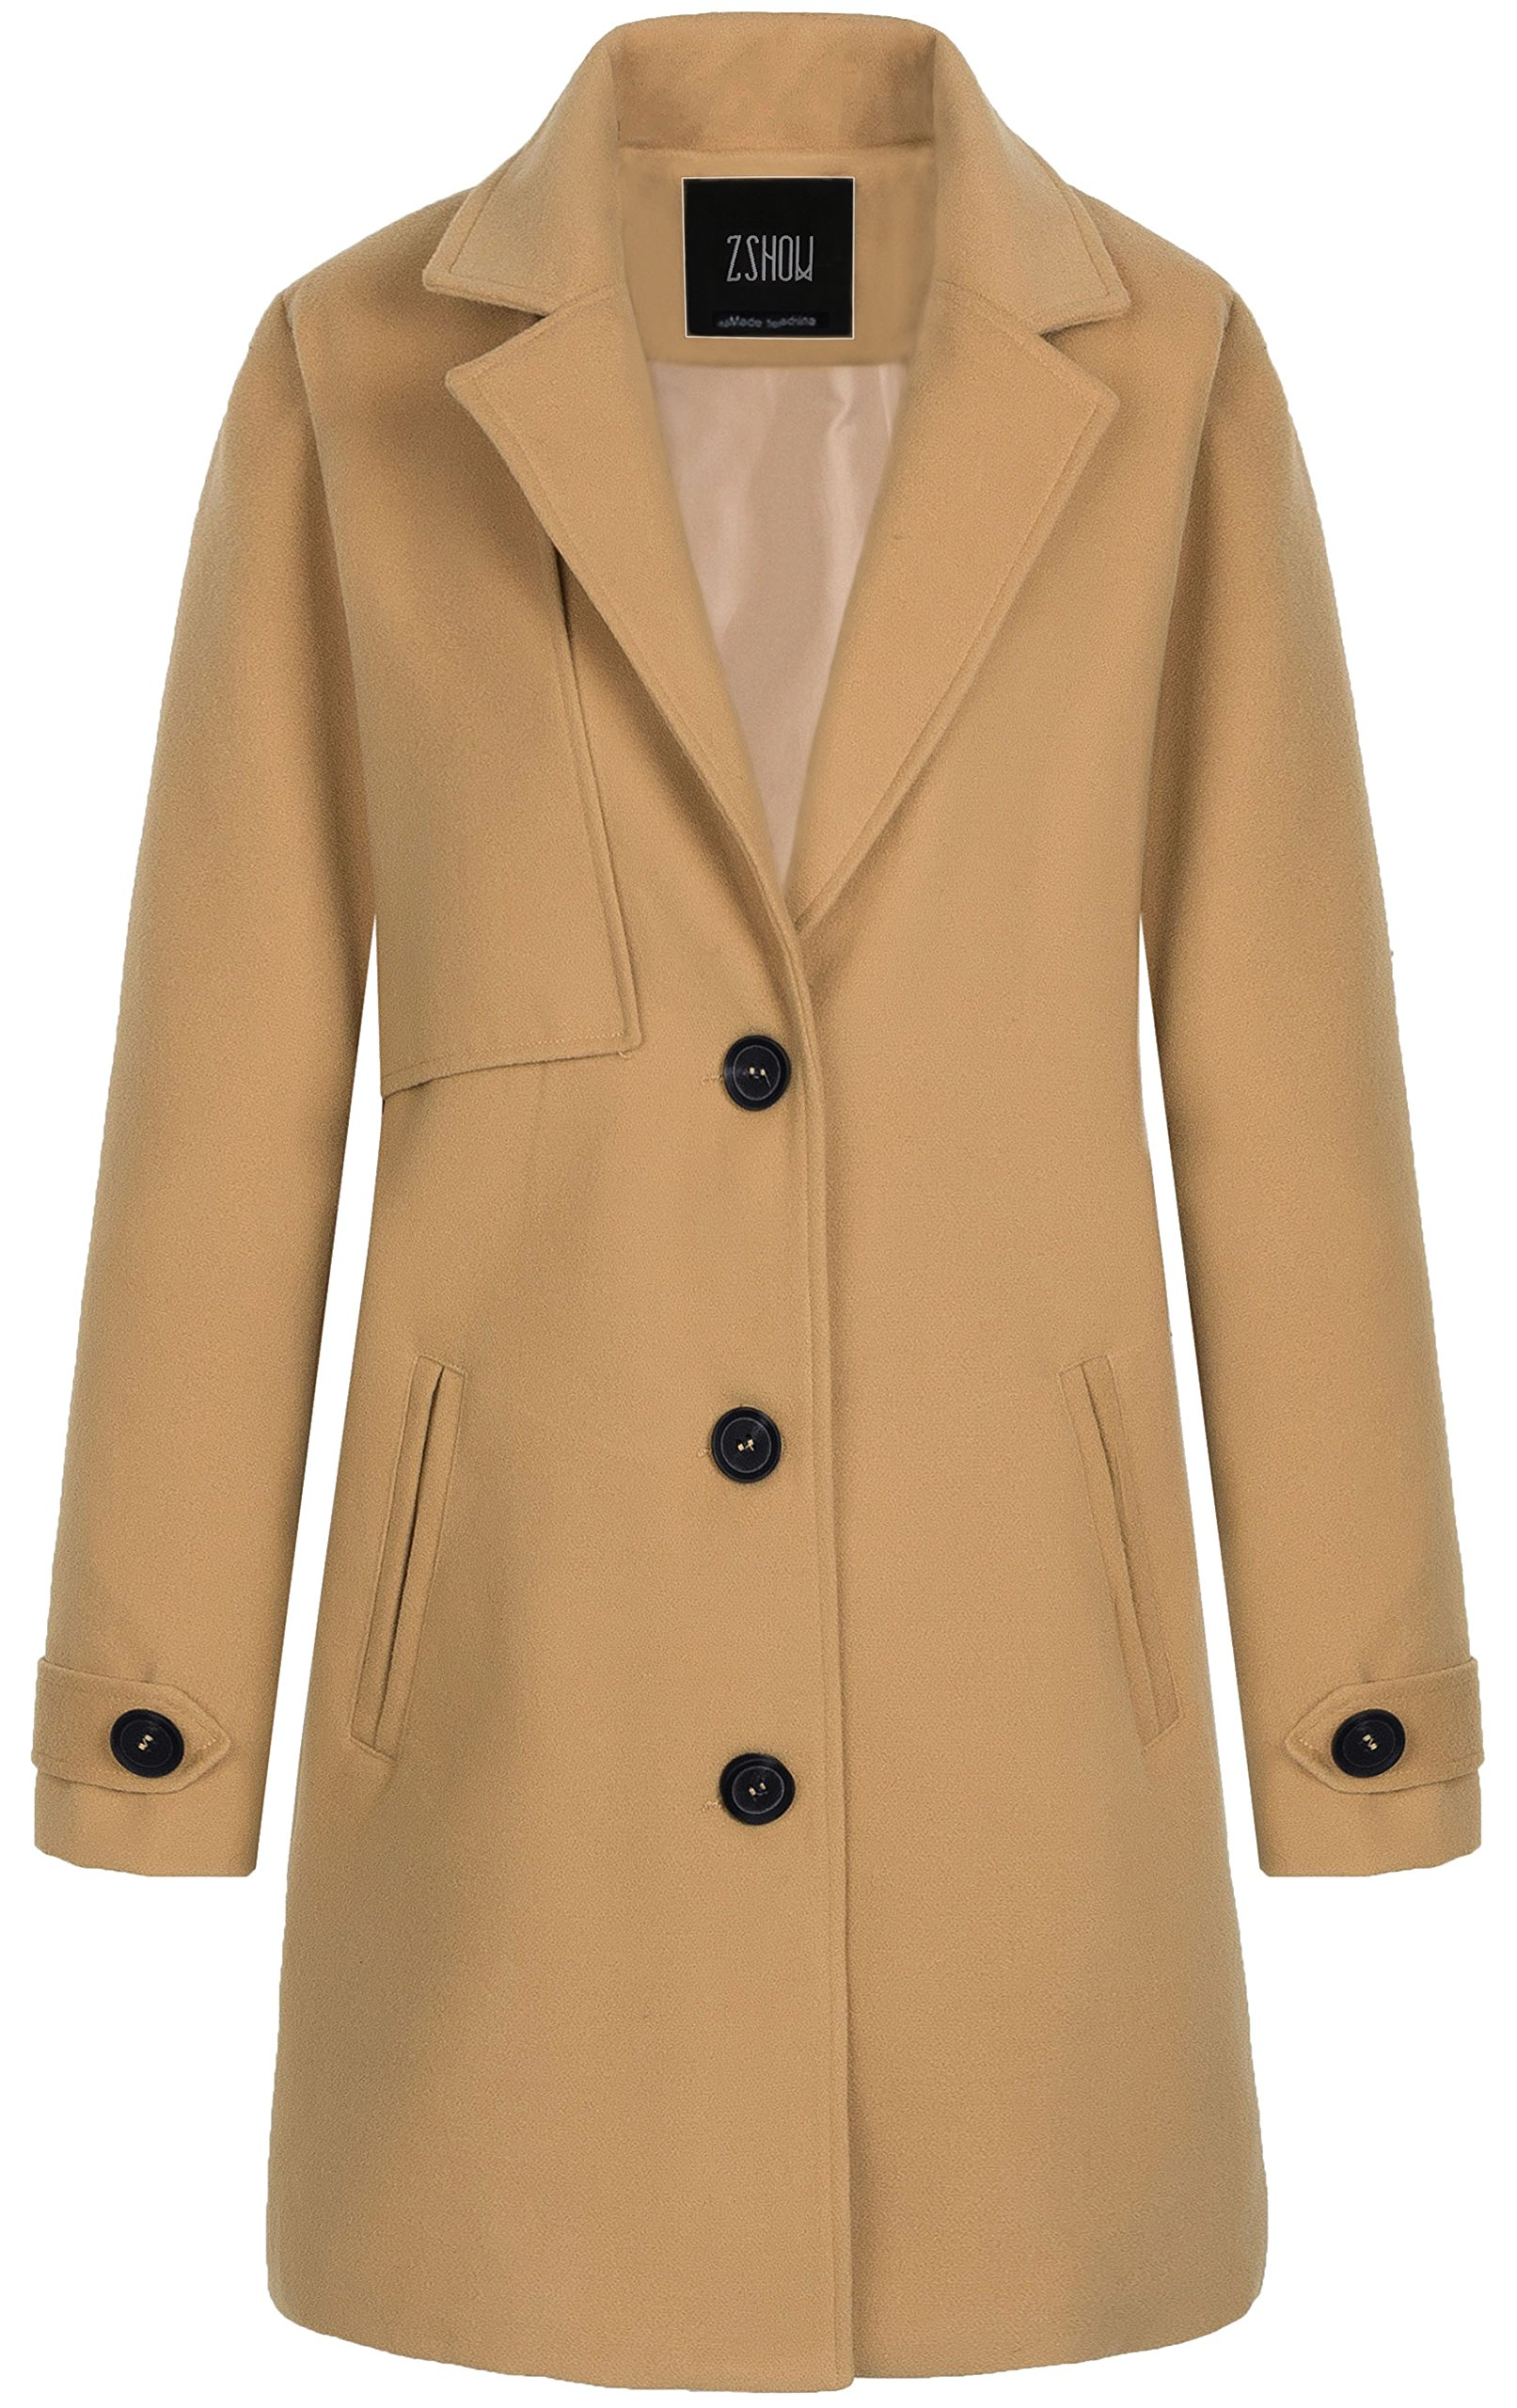 ZSHOW Women's Single Breasted Solid Color Classic Pea Coat Large Light Camel